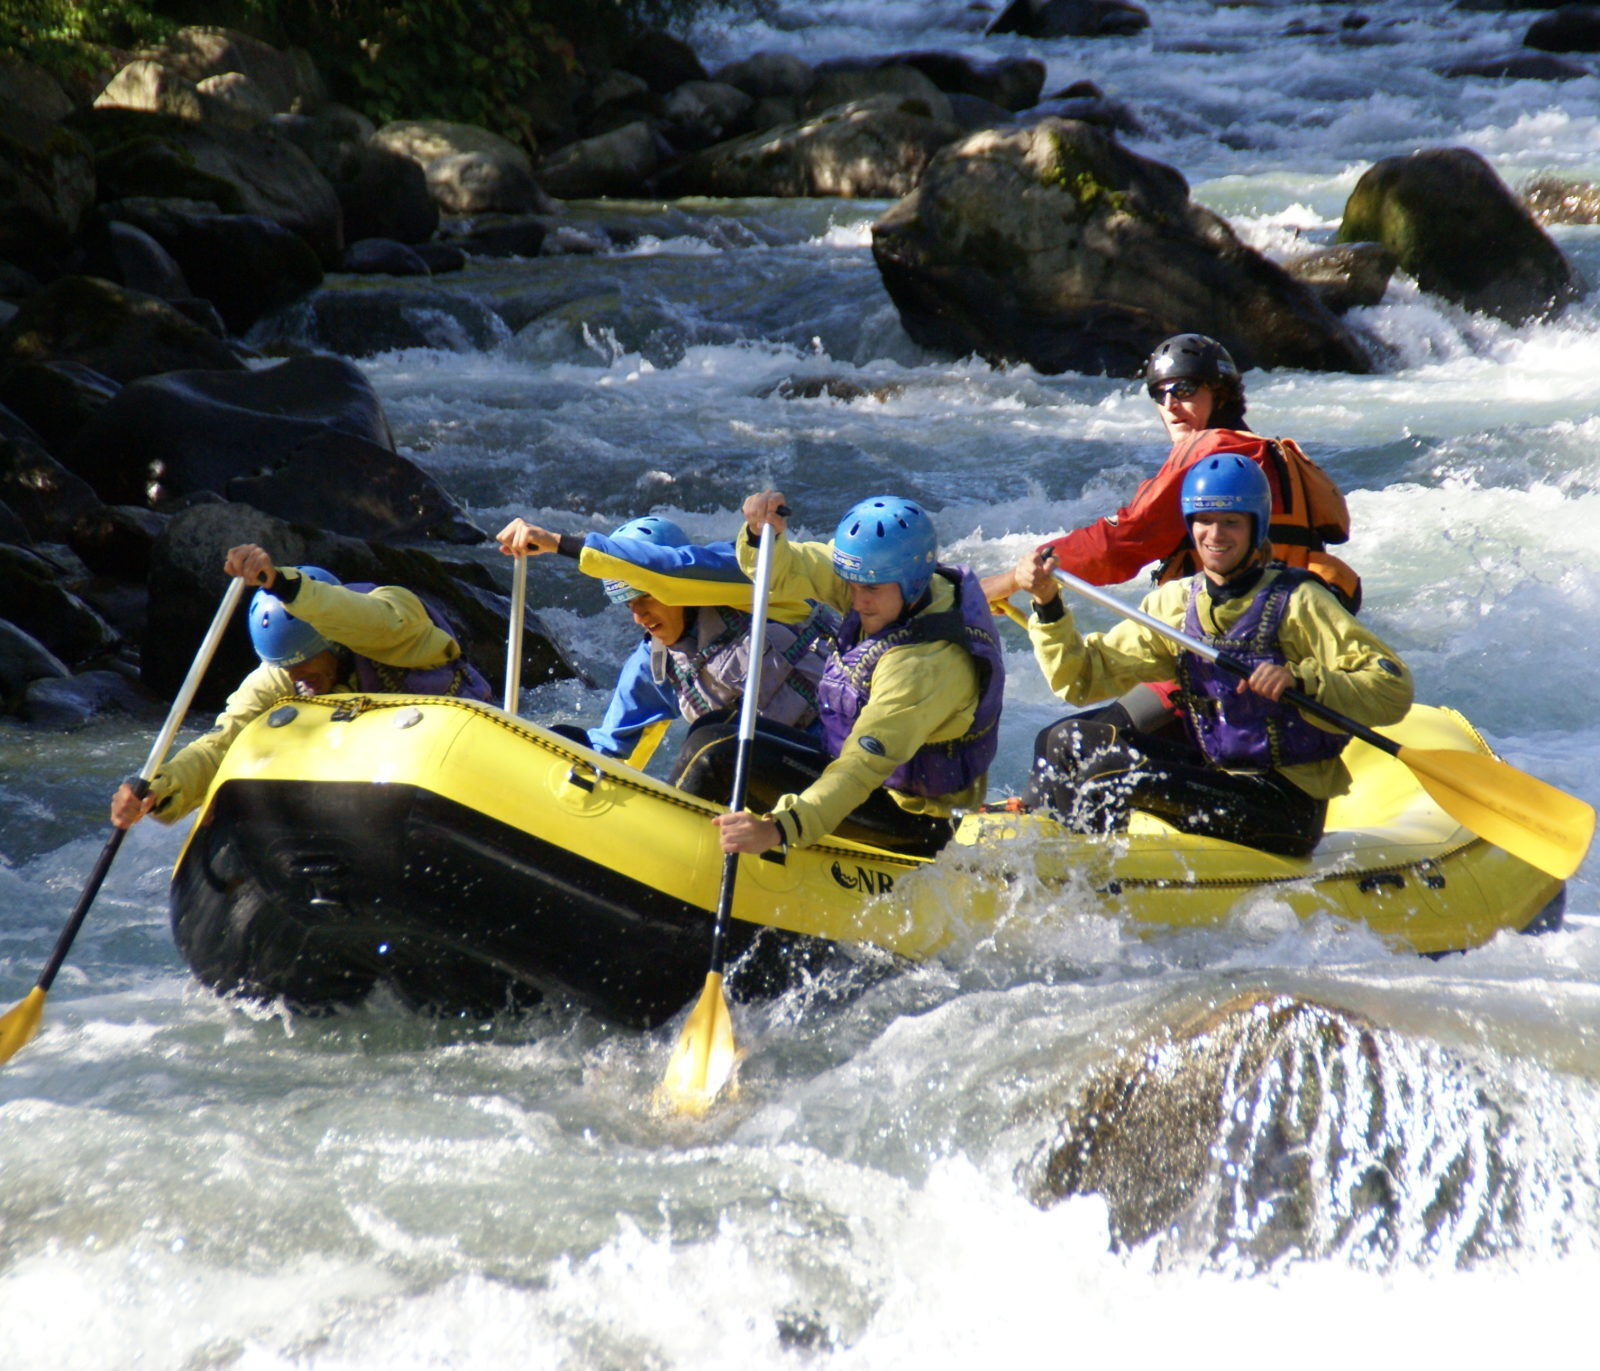 Image for Rafting in Val di Sole in Trentino, so much fun!